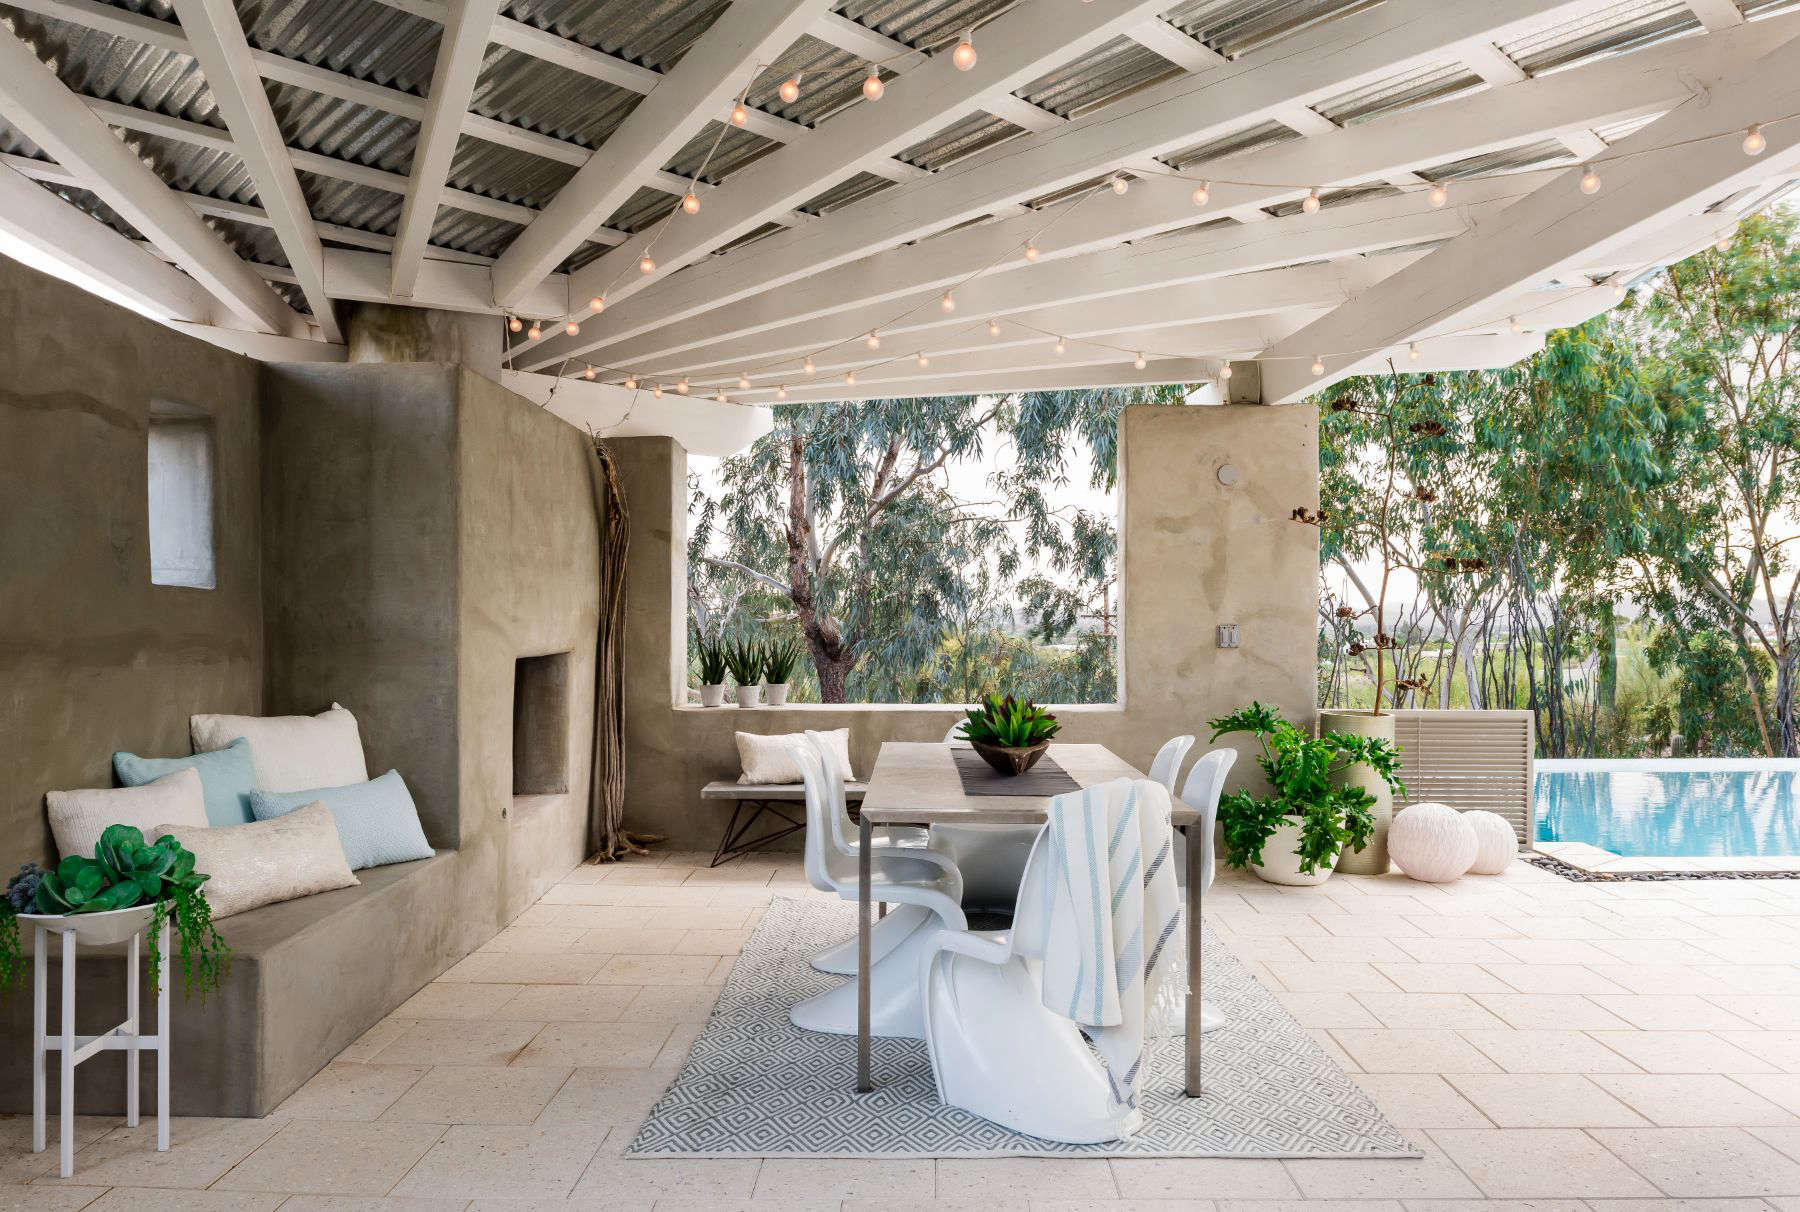 Best Hardscape 2017: A Cooling Room in the Desert by ... on Hardscape Patio id=99891